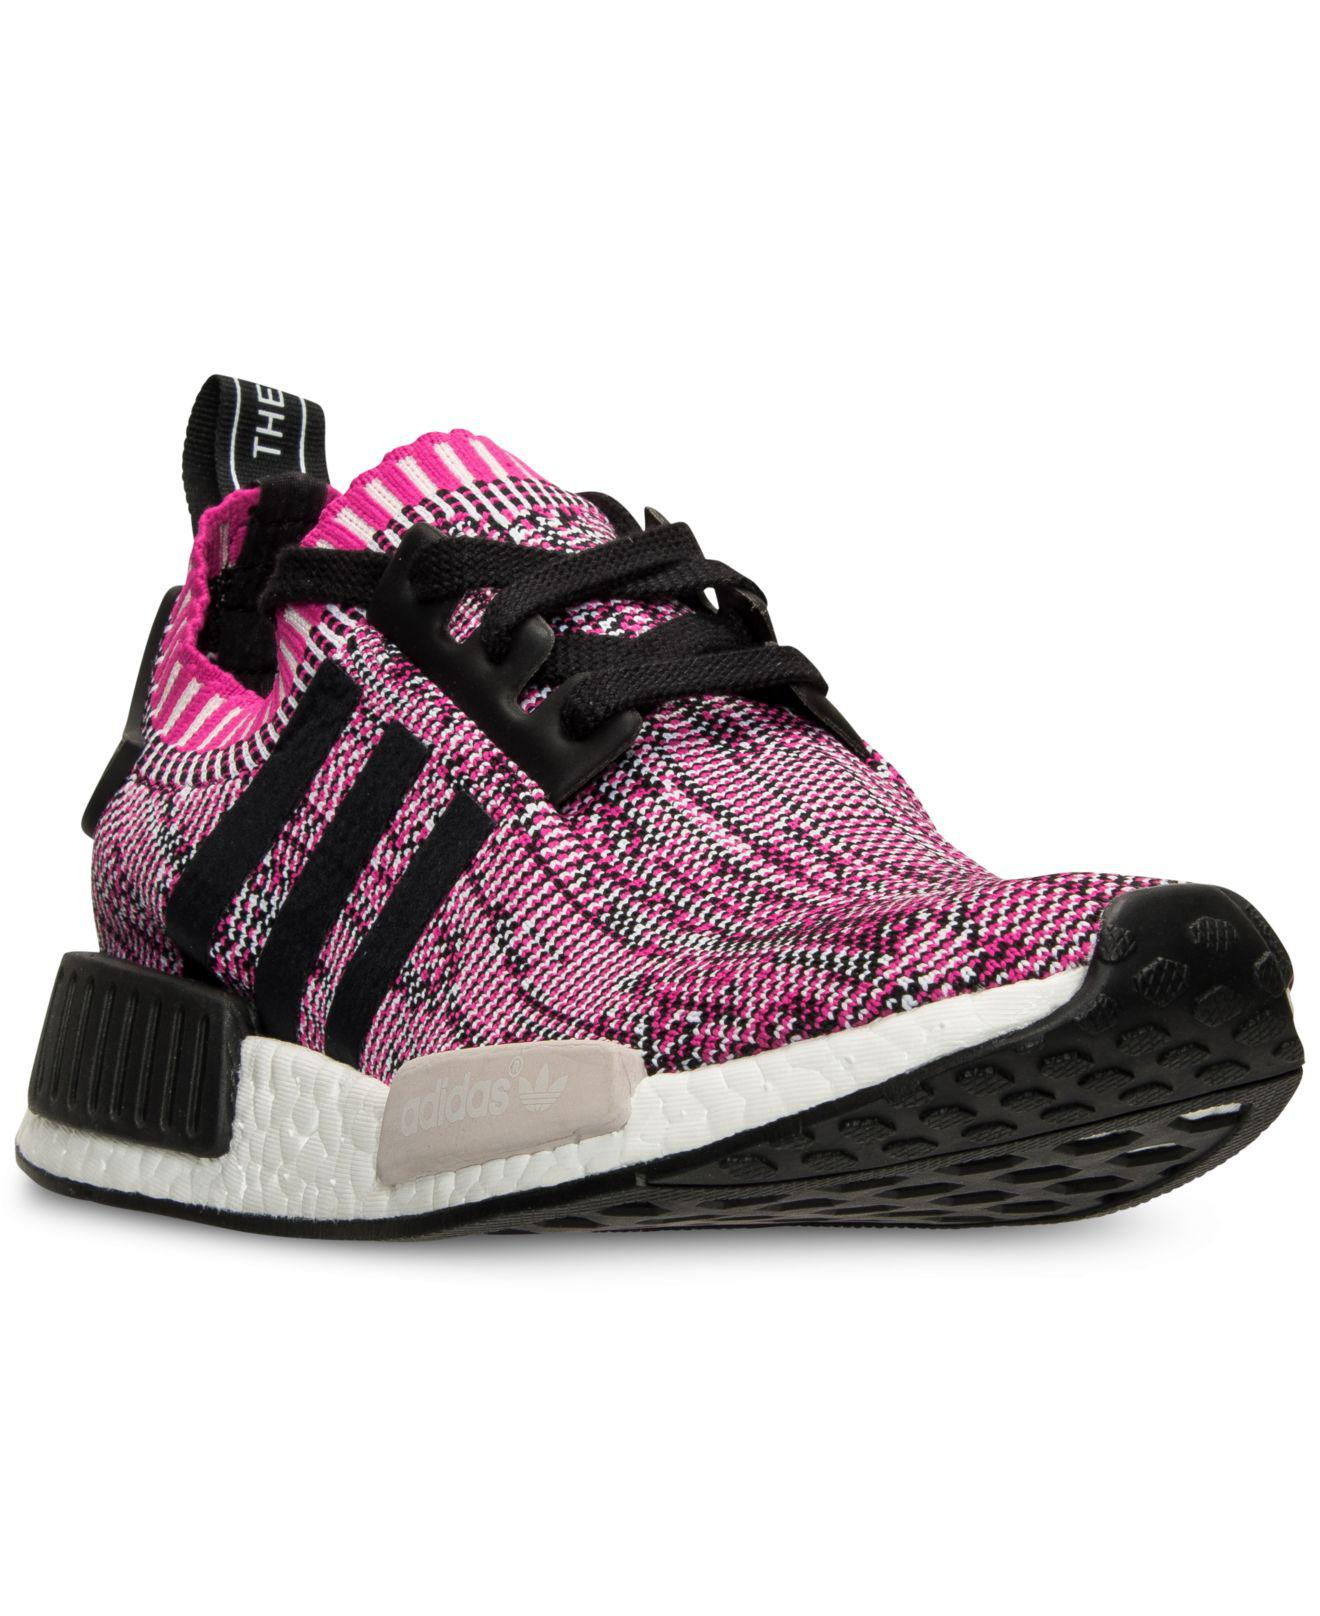 4fb0b030a162f adidas Women's Nmd Xr1 Primeknit Casual Sneakers From Finish Line in ...